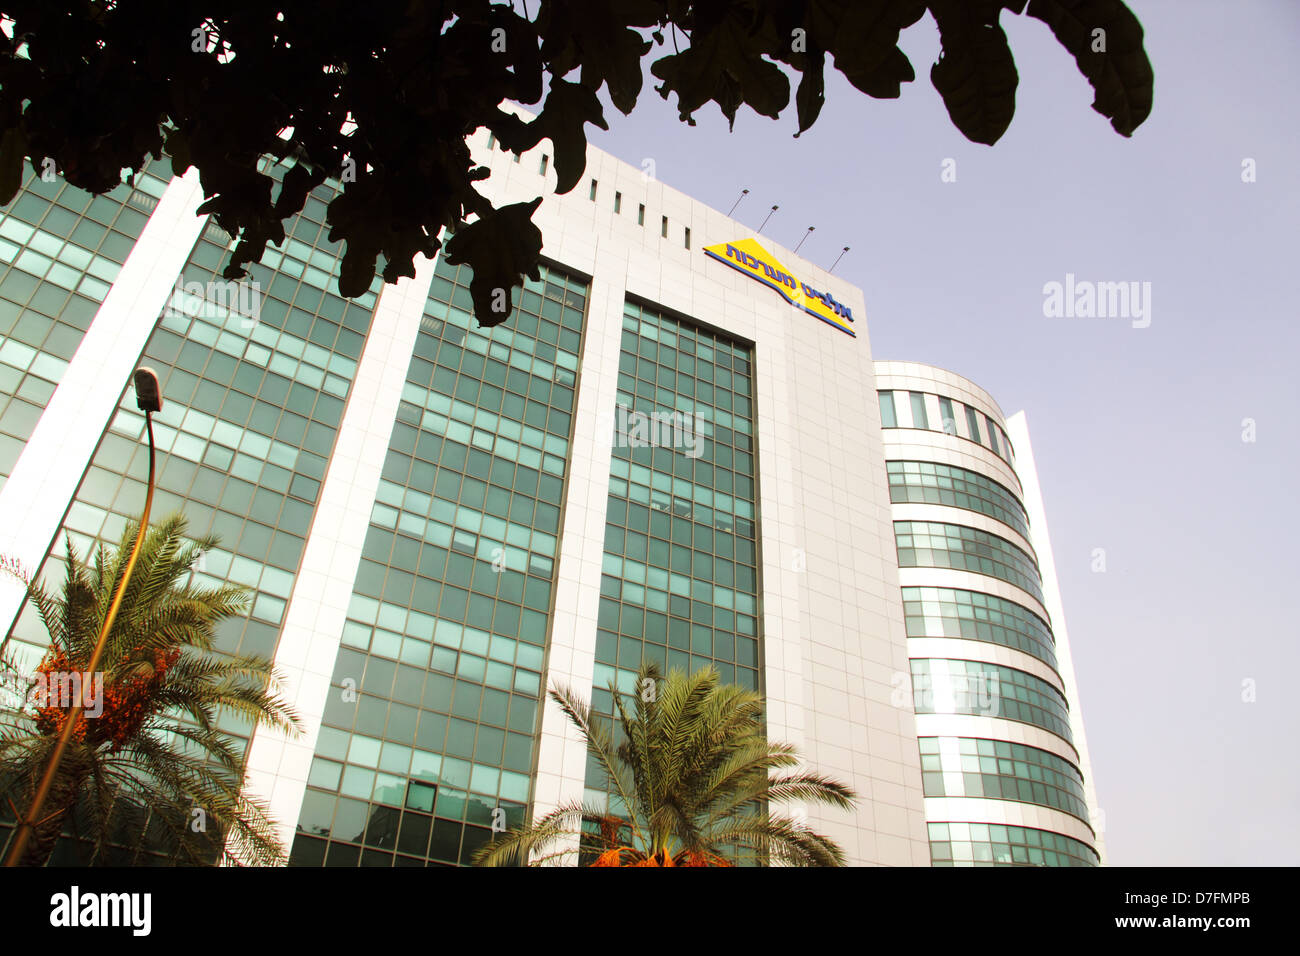 Elbit Systems Ltd building at the Science park in Rehovot - Stock Image